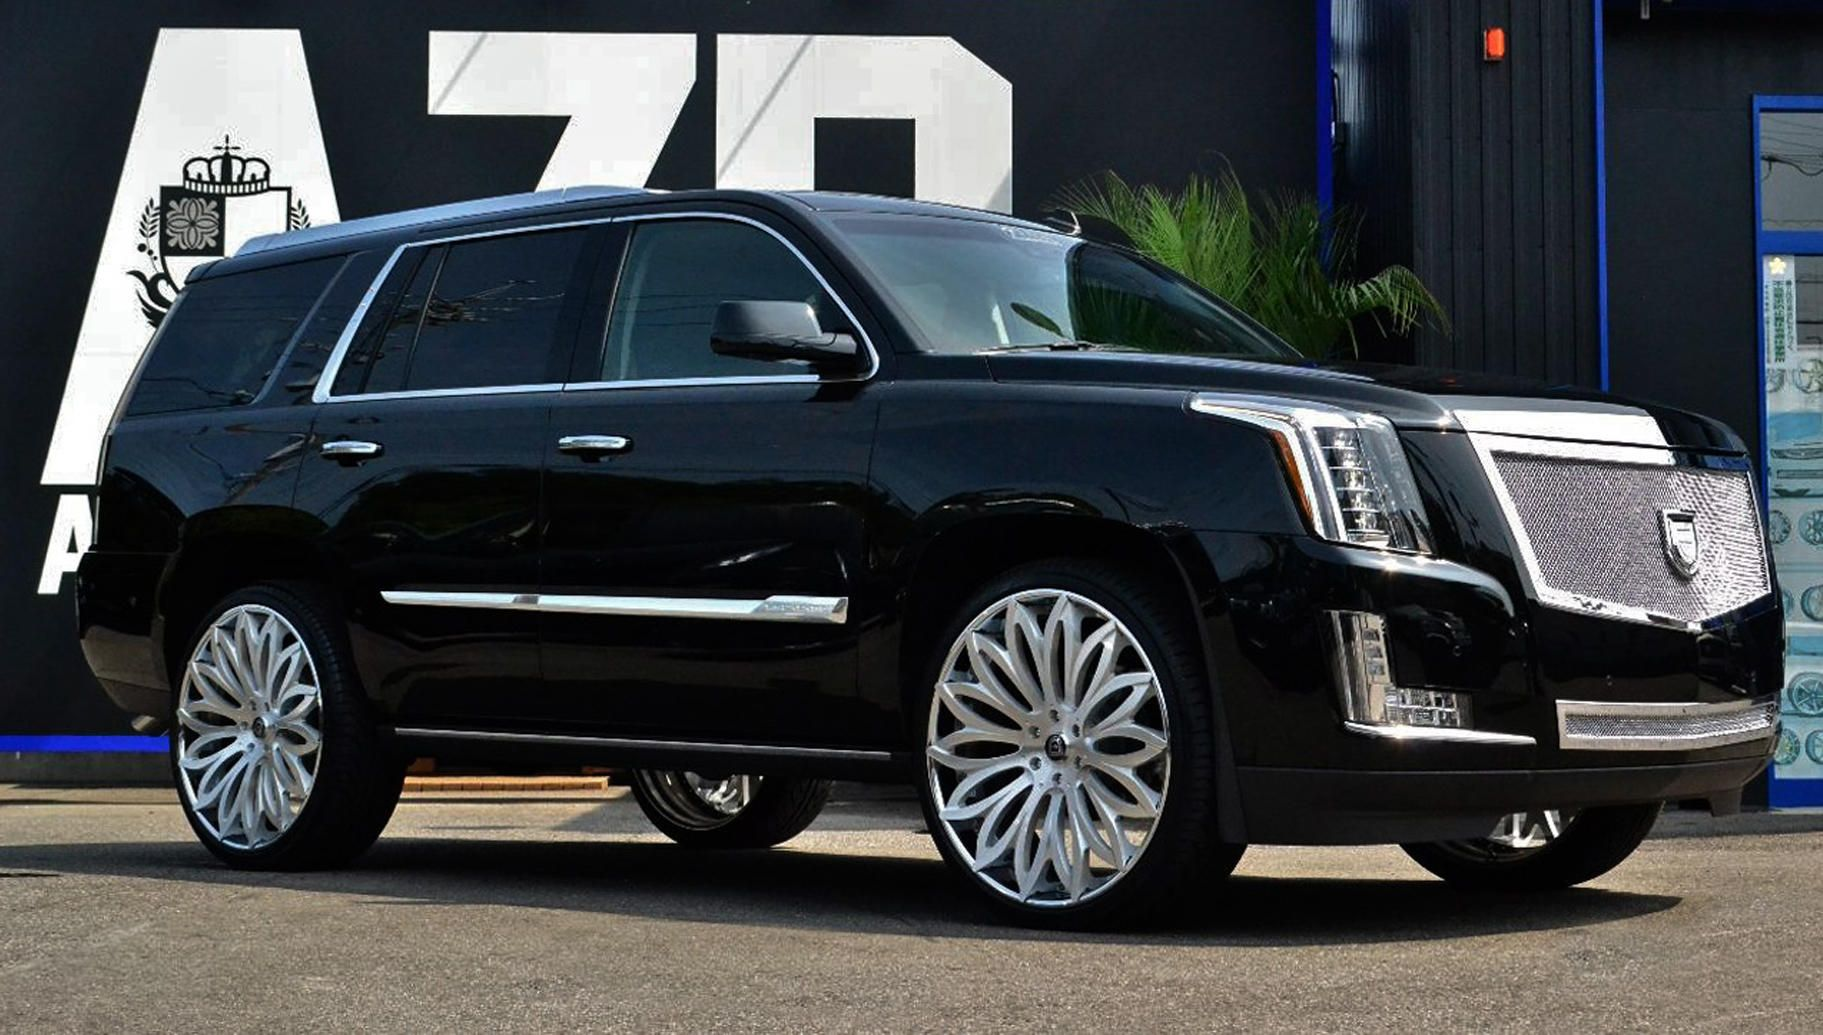 hight resolution of lexani wheels the leader in custom luxury wheels lf 731 brushed center with stainless steel chrome lip on the 2015 cadillac escalade